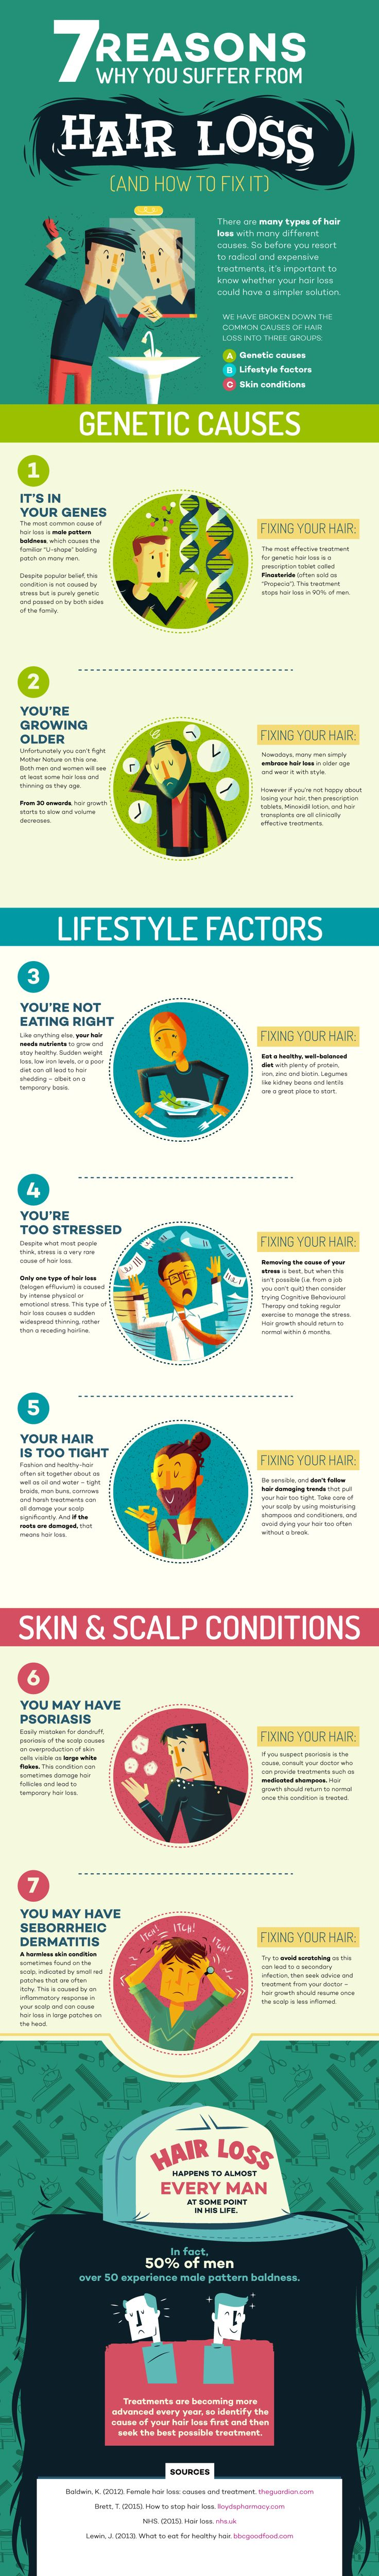 7 reasons why you suffer from #hair loss (and how to fix it) – #Infographic #hairloss